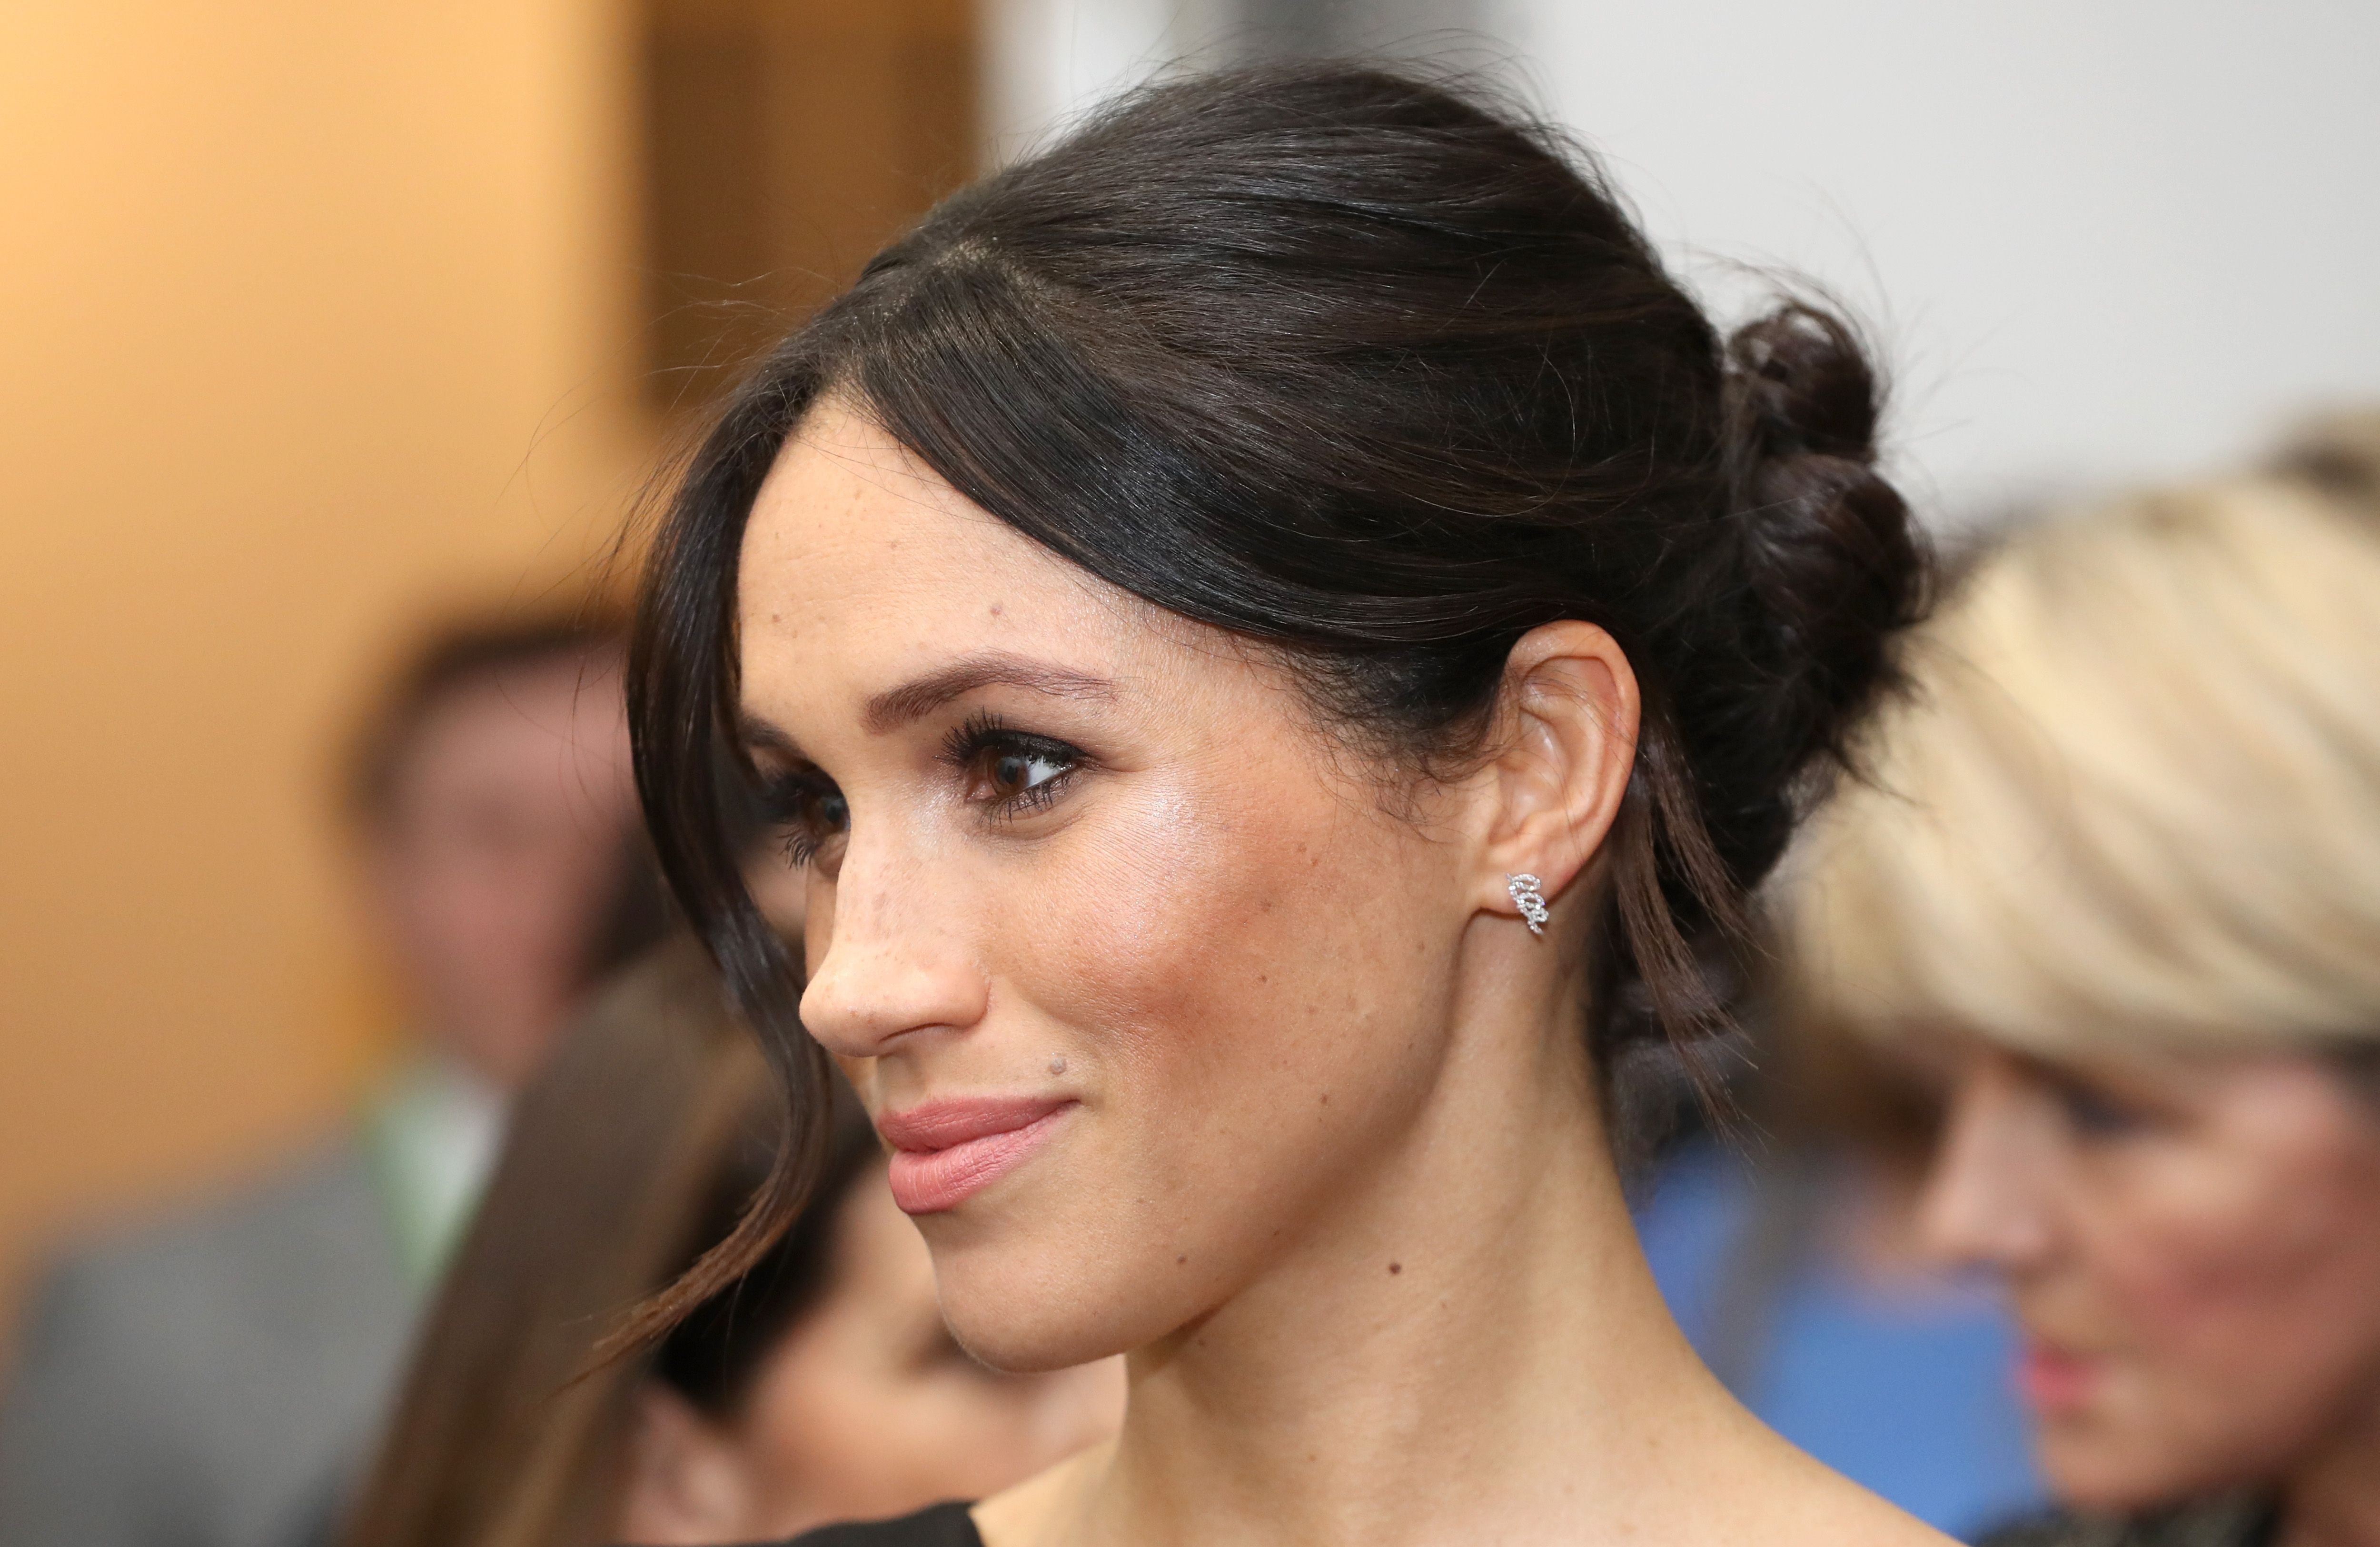 meghan markle swears by facial exercises but does face yoga work prevention